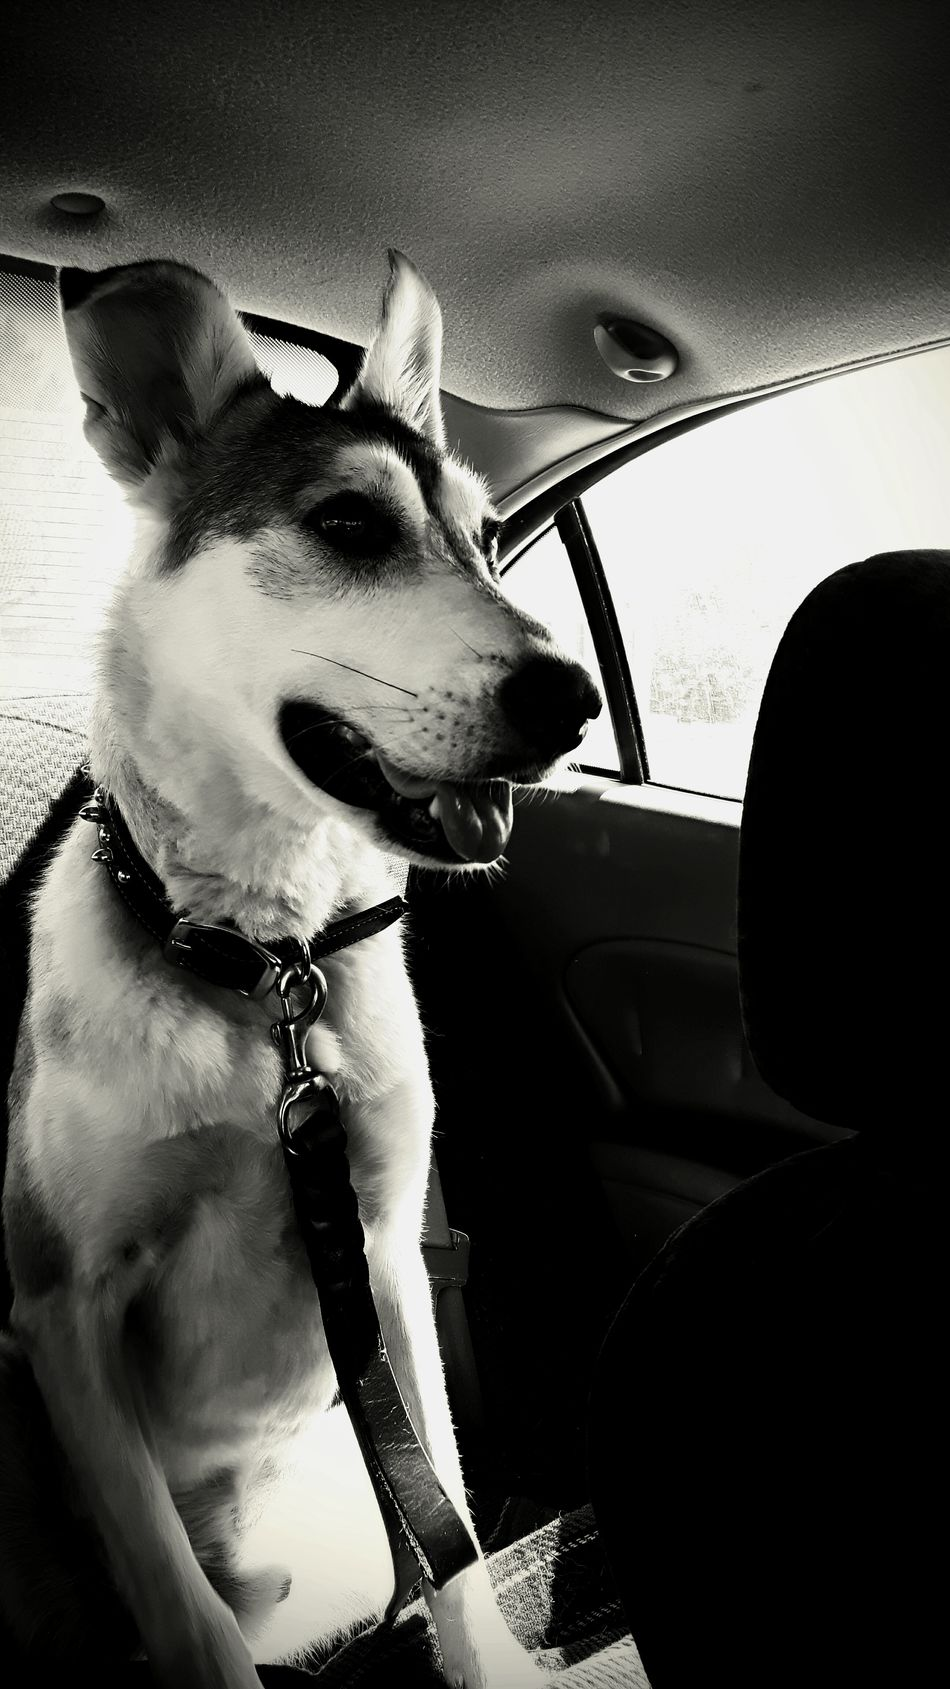 Black & White Lovehim Happy Sweety  Sweetheart Innocence Dogslife Doglover Dog Pets CarRides